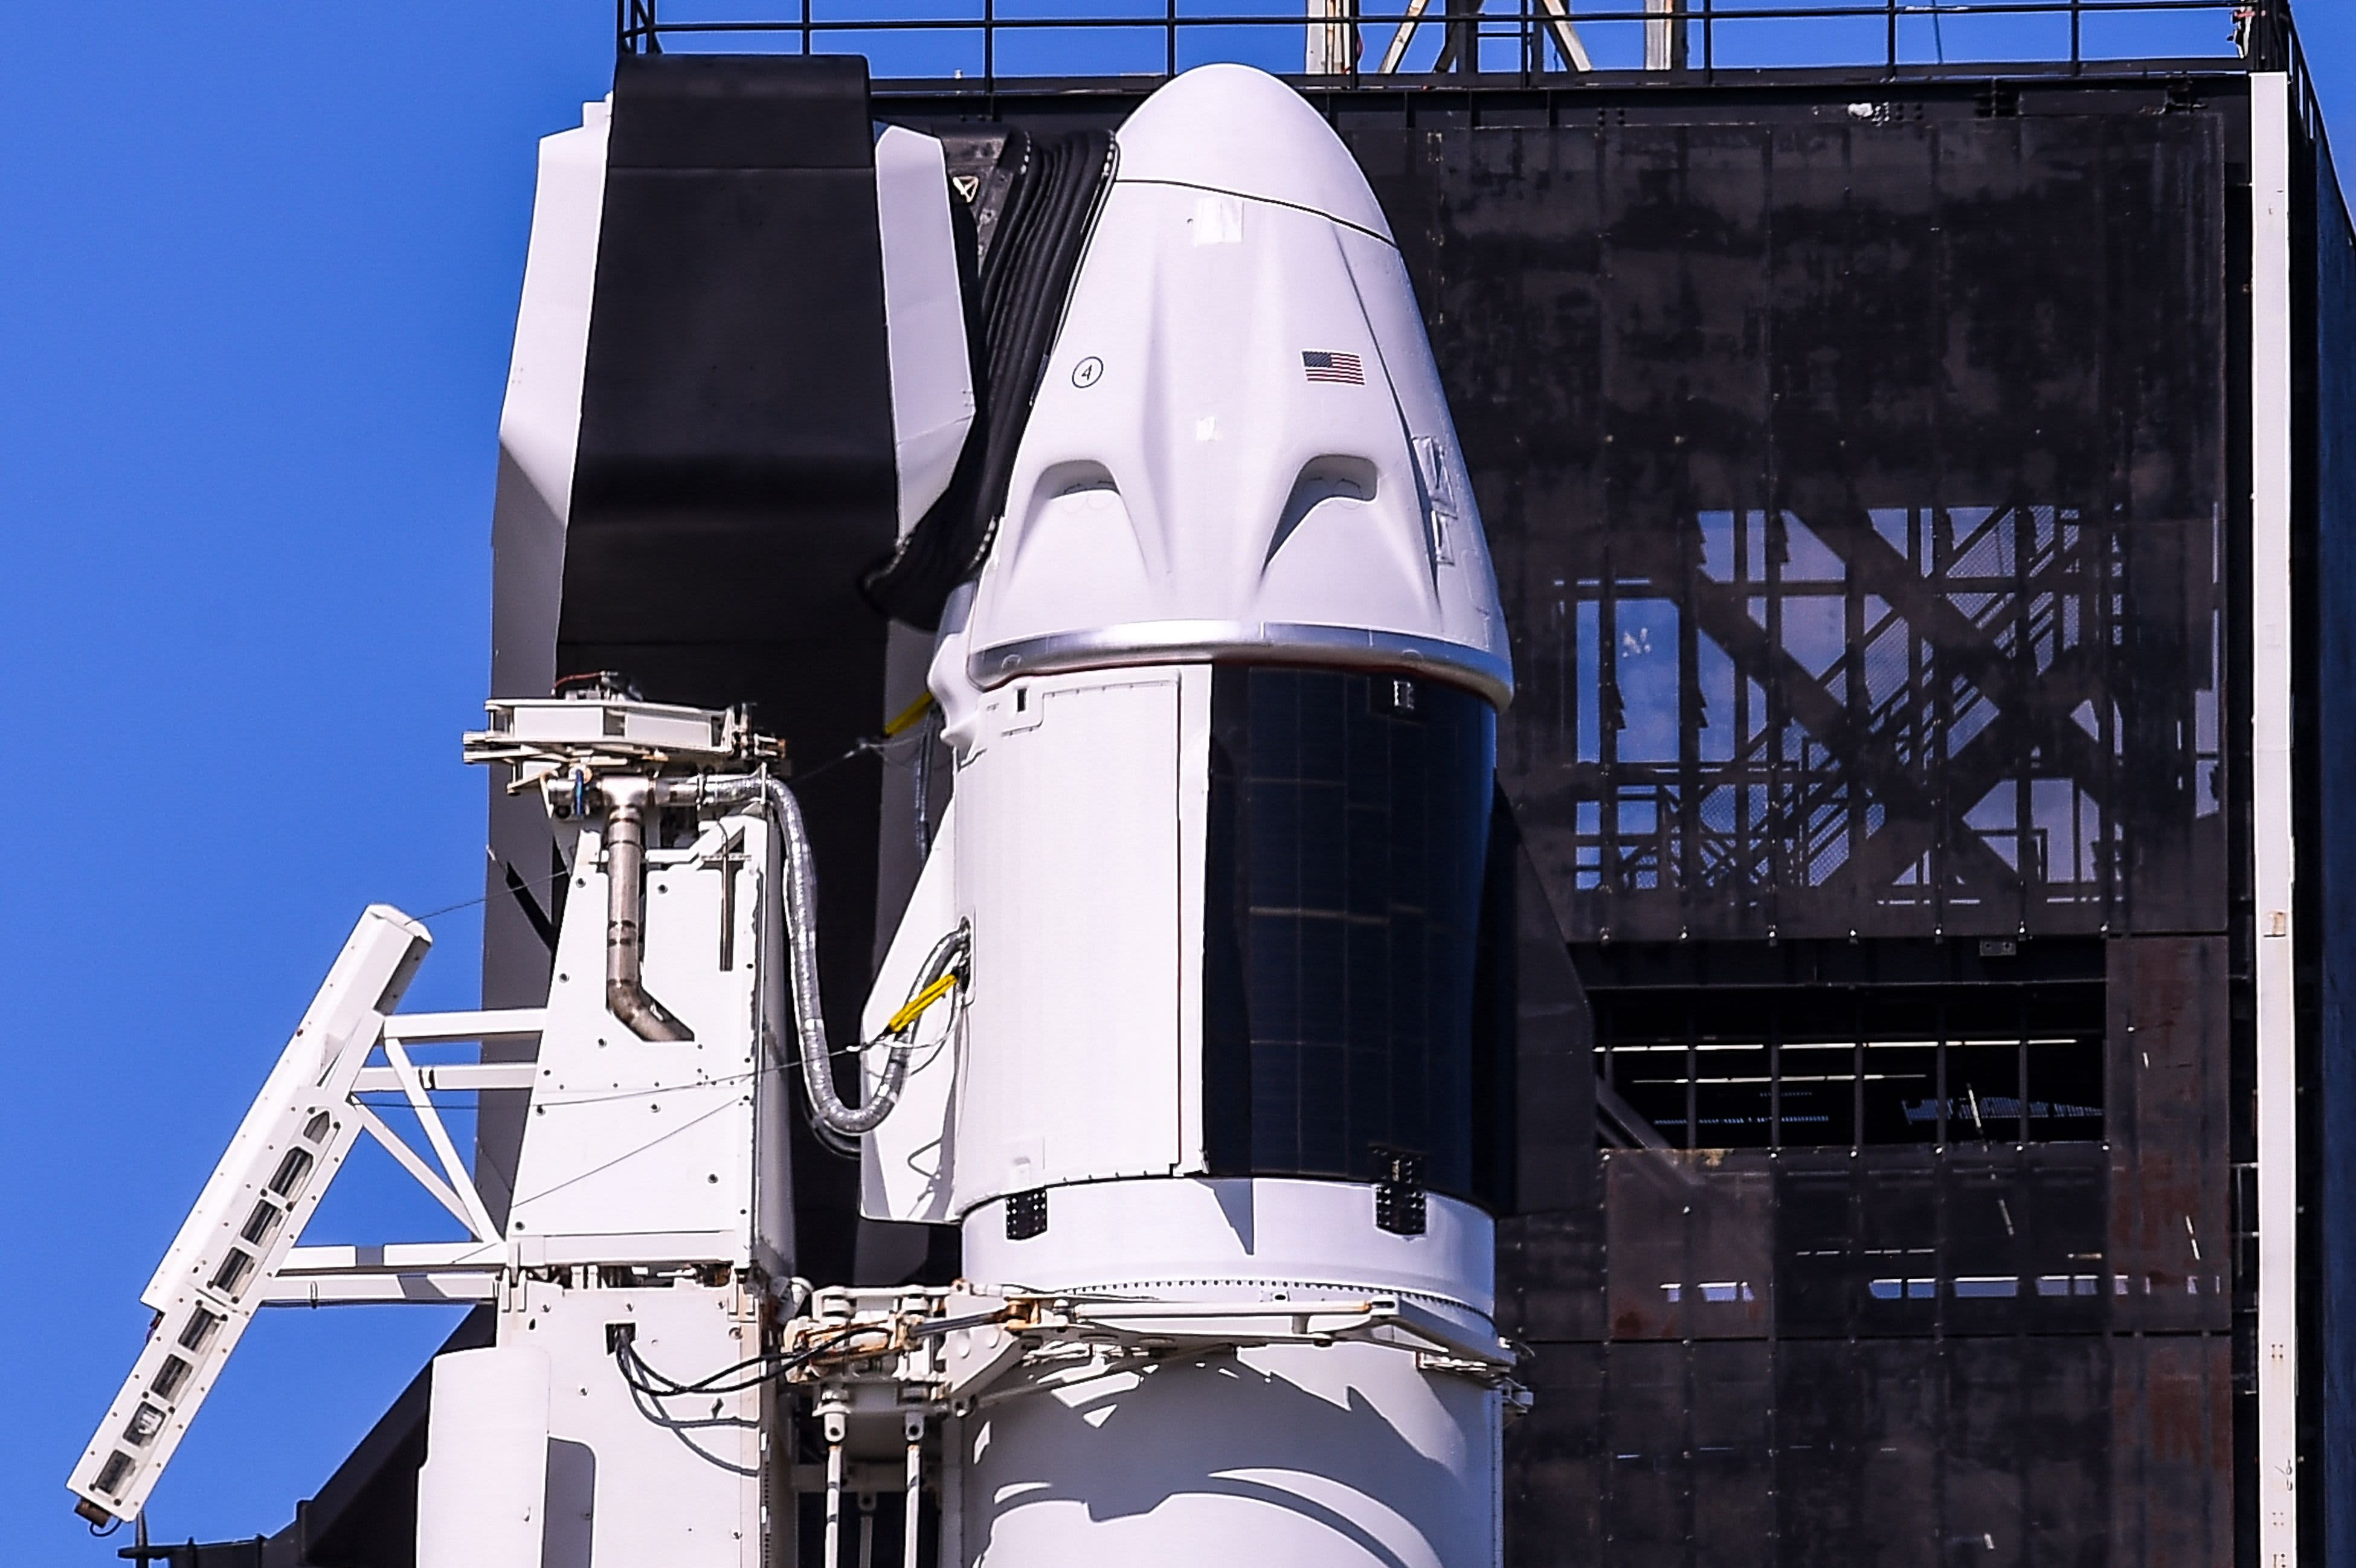 SpaceX Inspiration4 launch: Live updates as crew prepares for liftoff in four hours